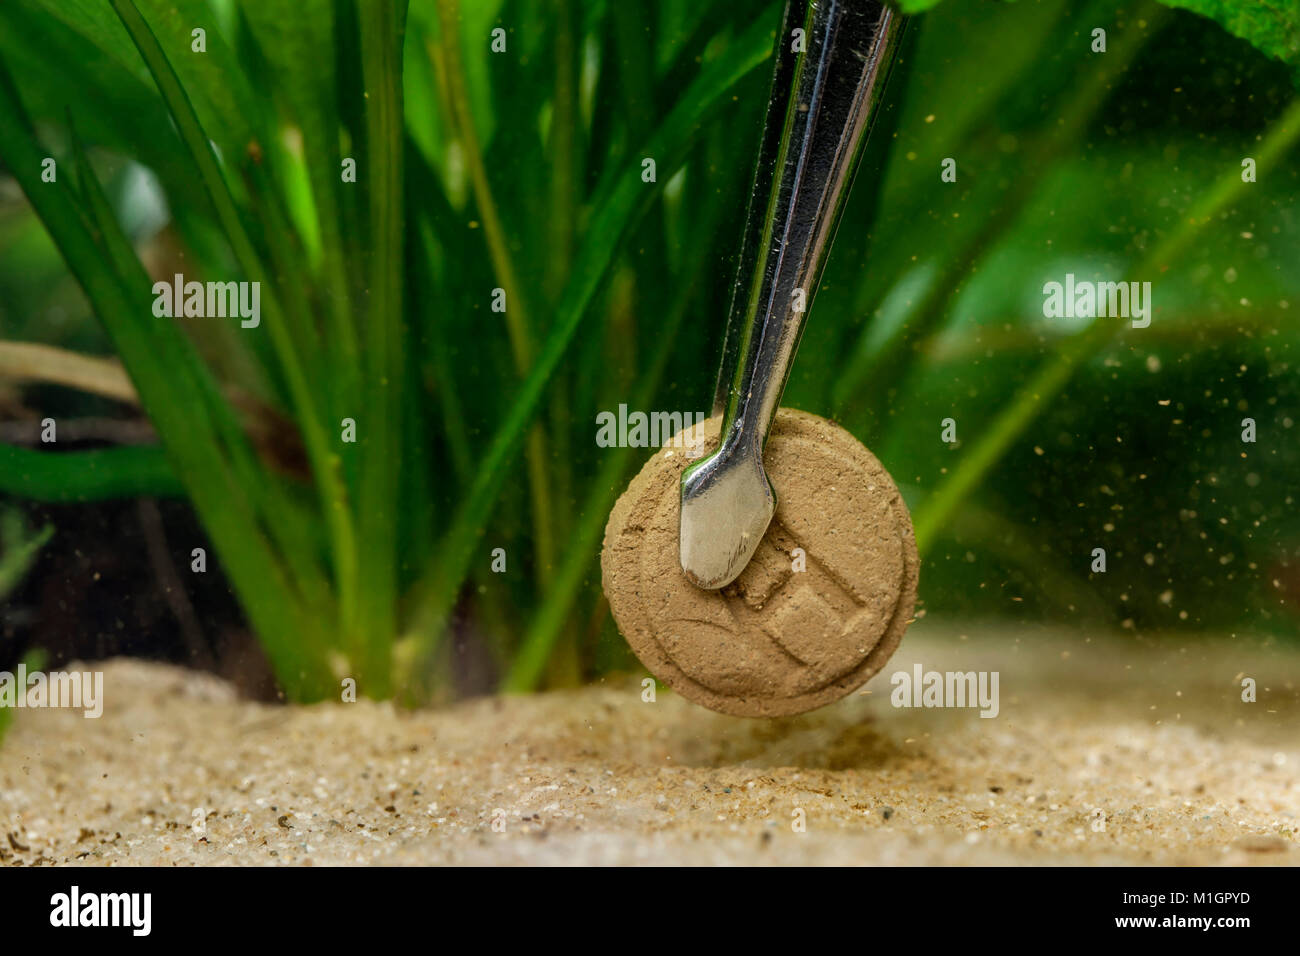 Fertiliser for aquatic plants being brought to a freshwater aquarium. Forceps with tab - Stock Image